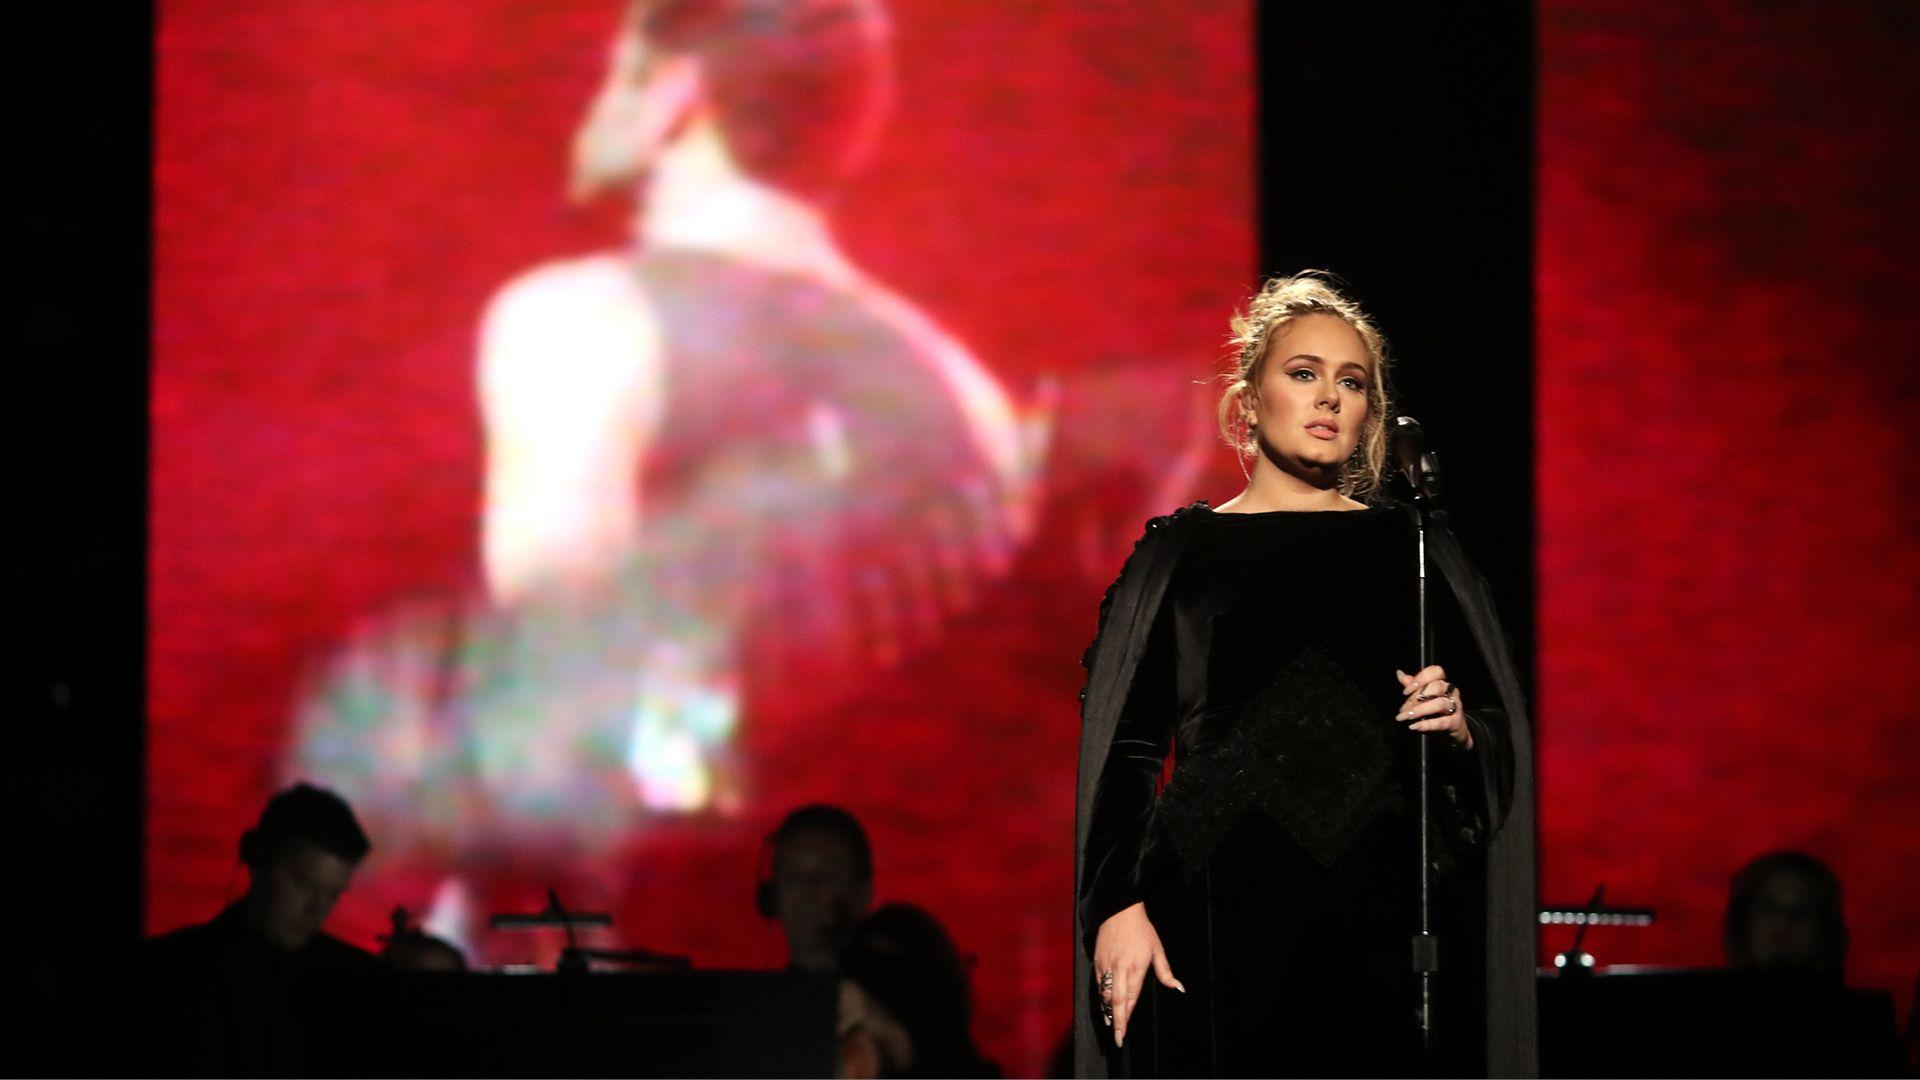 Adele Performing At The Grammy's